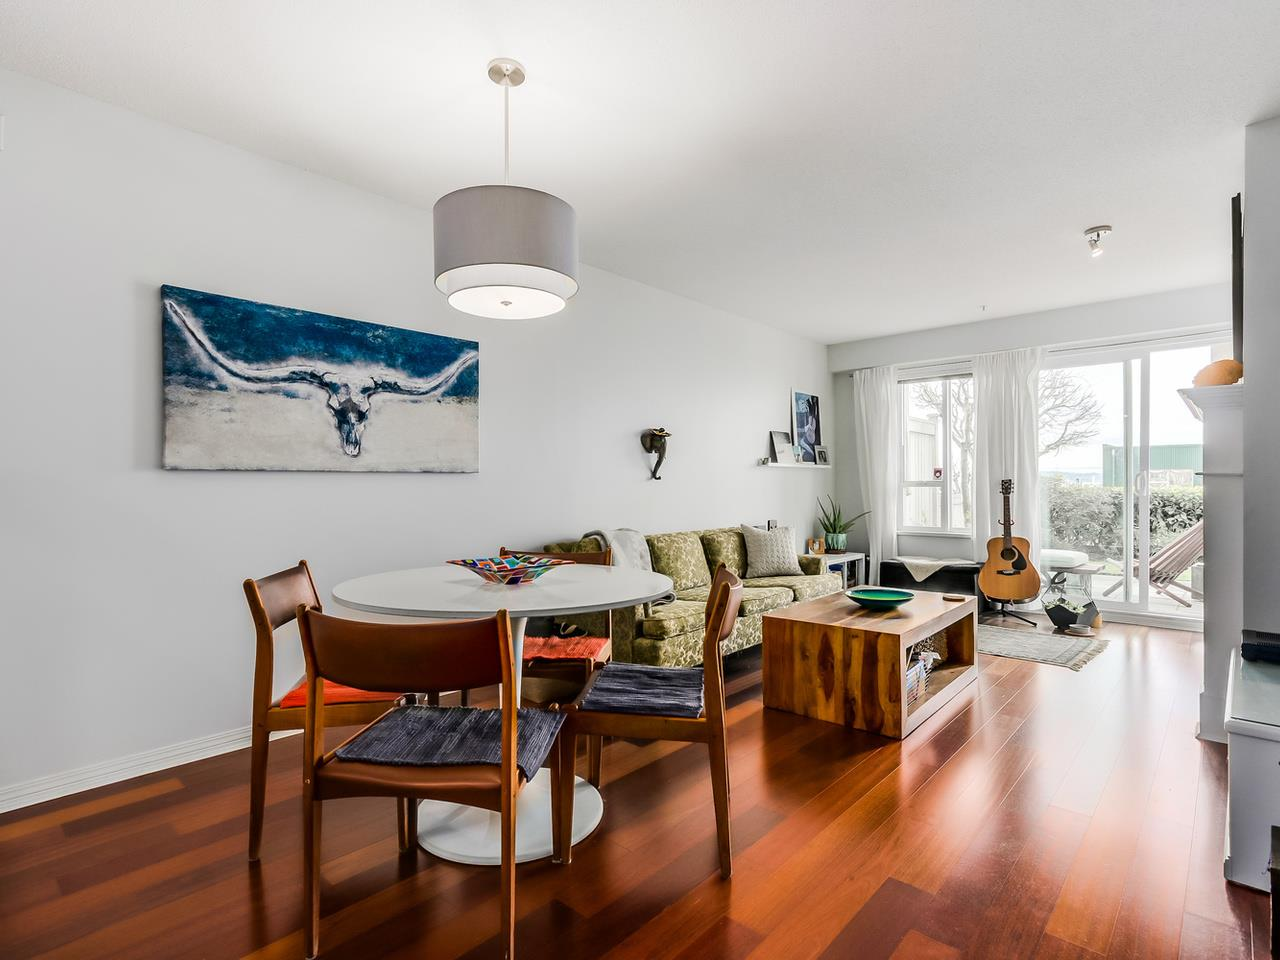 Photo 6: 109 333 E 1ST STREET in North Vancouver: Lower Lonsdale Condo for sale : MLS® # R2032321